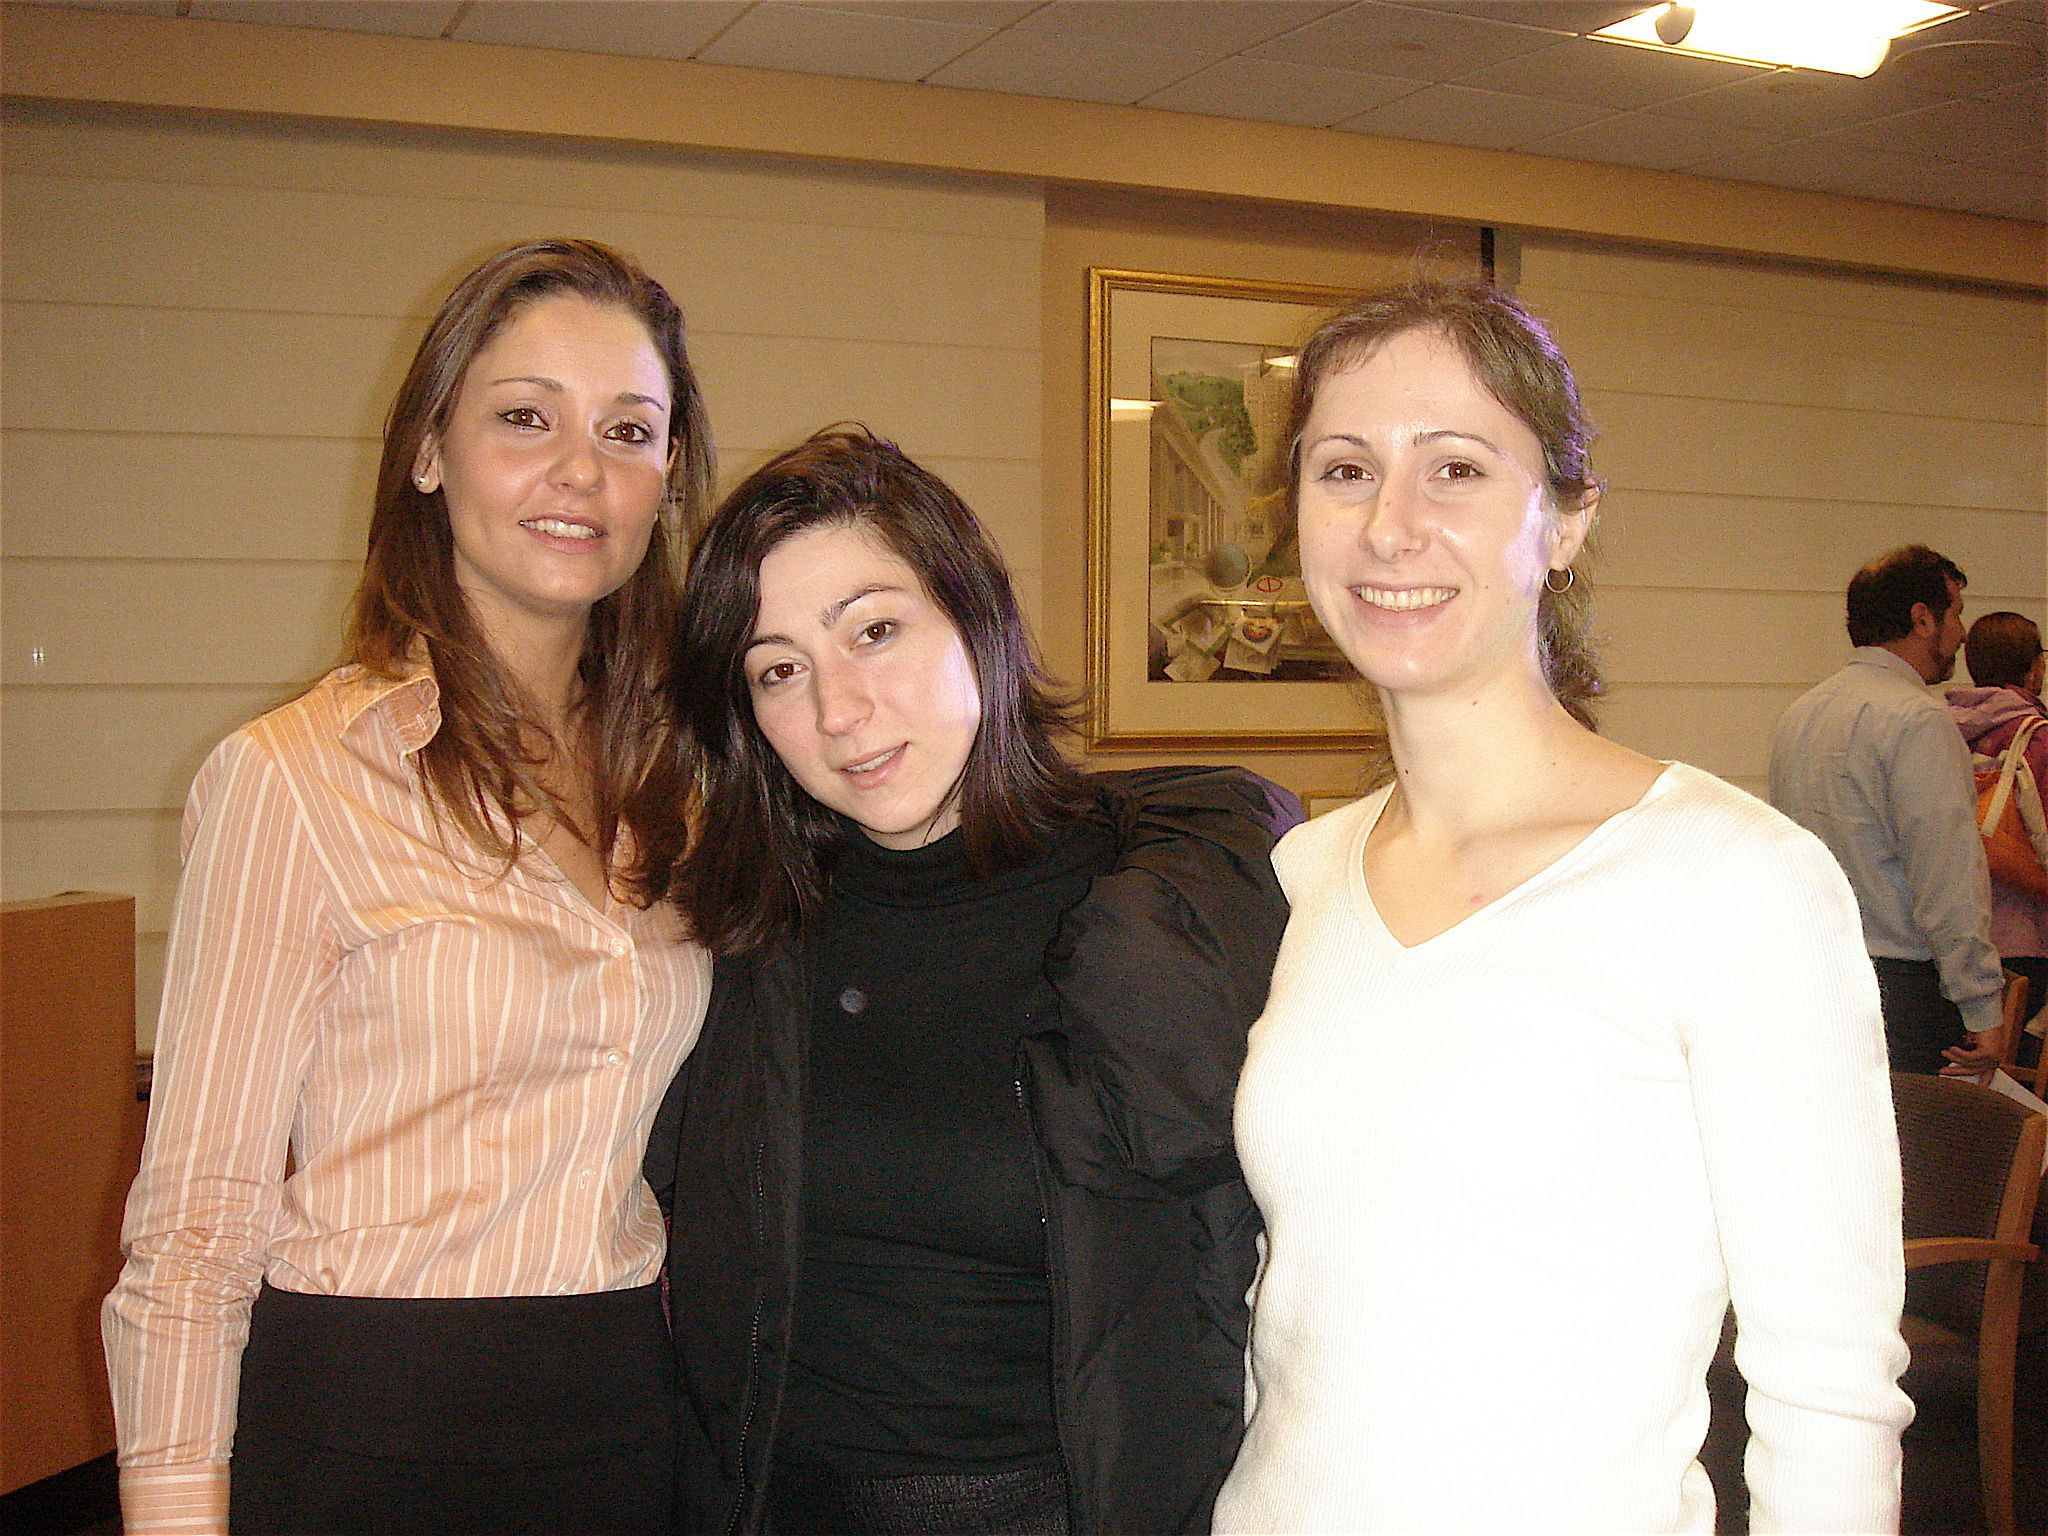 Branka with graduate student friends.